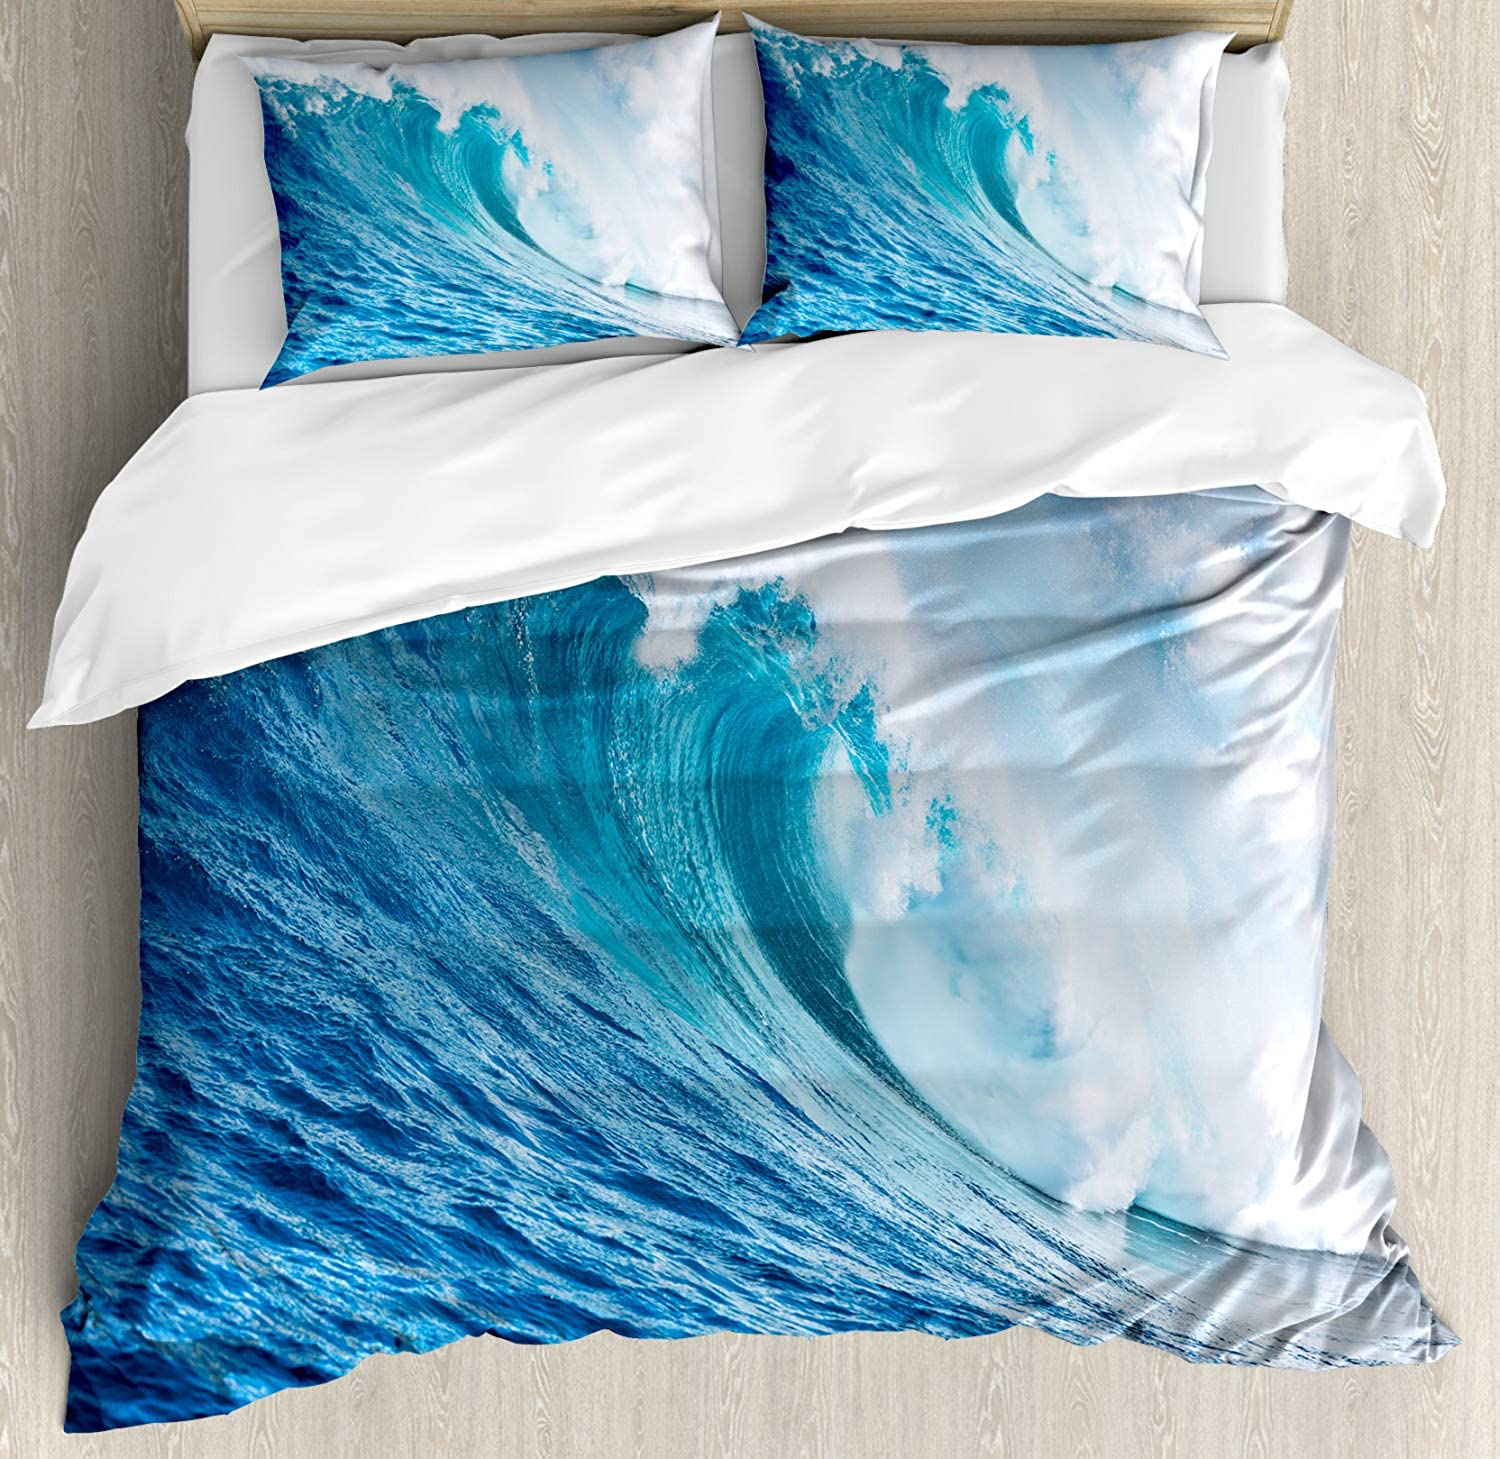 Ocean Decor Queen Size Duvet Cover Set by Ambesonne, Large Powerful Pasific Surf Sea Wave Crashes Hard, Decorative 3 Piece Bedding Set with 2 Pillow Shams